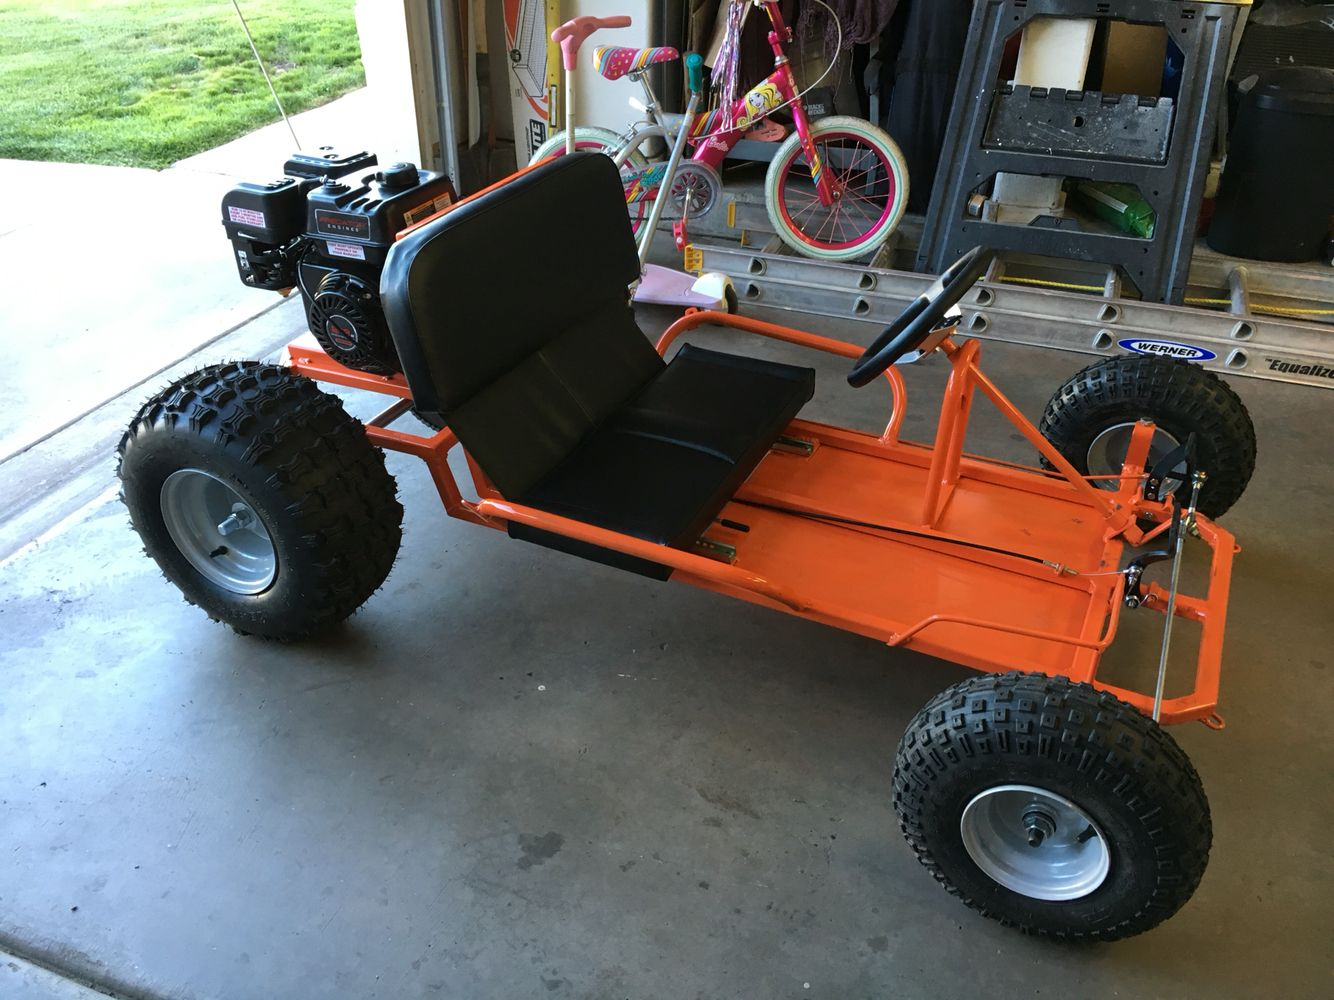 Watch additionally 141878416584 together with What Is The Best Solid Axle Rear Suspension as well 2015 Gsi Gas Powered Drift Trike Tricycle Bike Fat Ryder Motoriz 29550 additionally Go Kart Plans. on live axle go cart